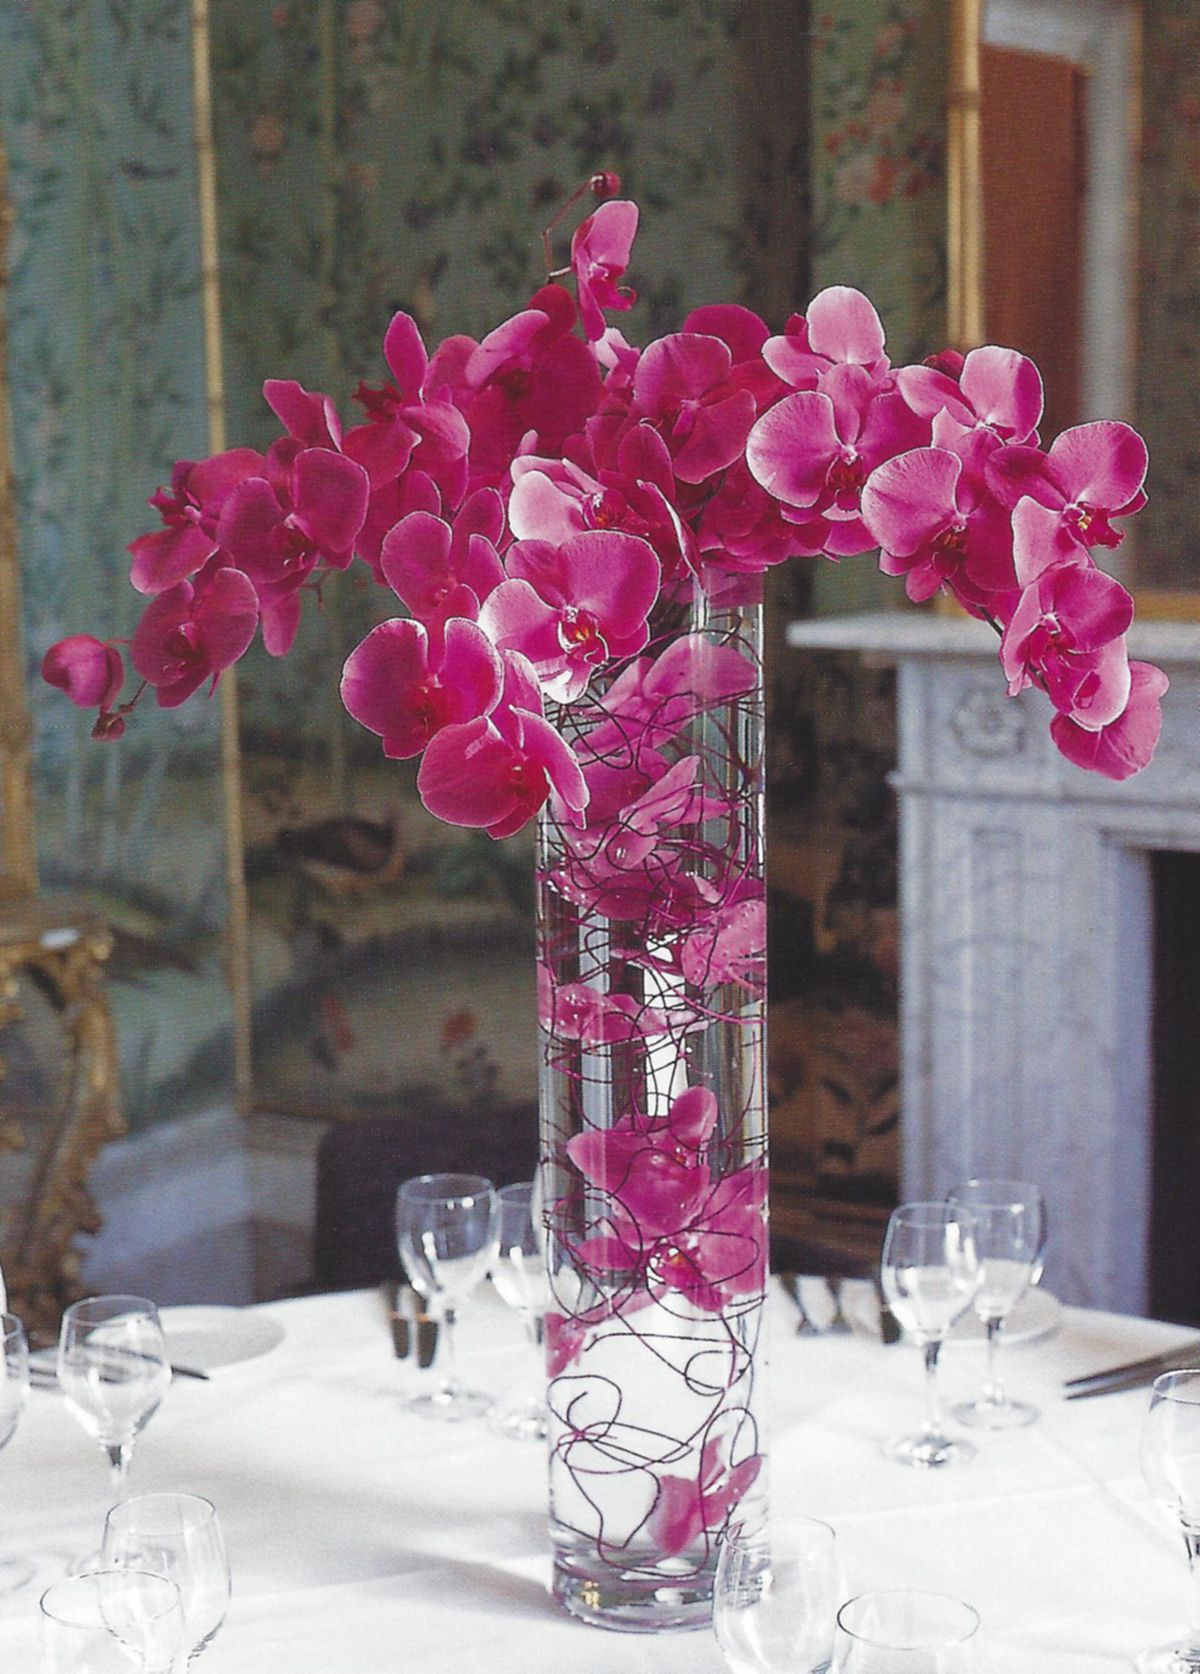 Phaleonopsis orchids with orchid blooms submerged